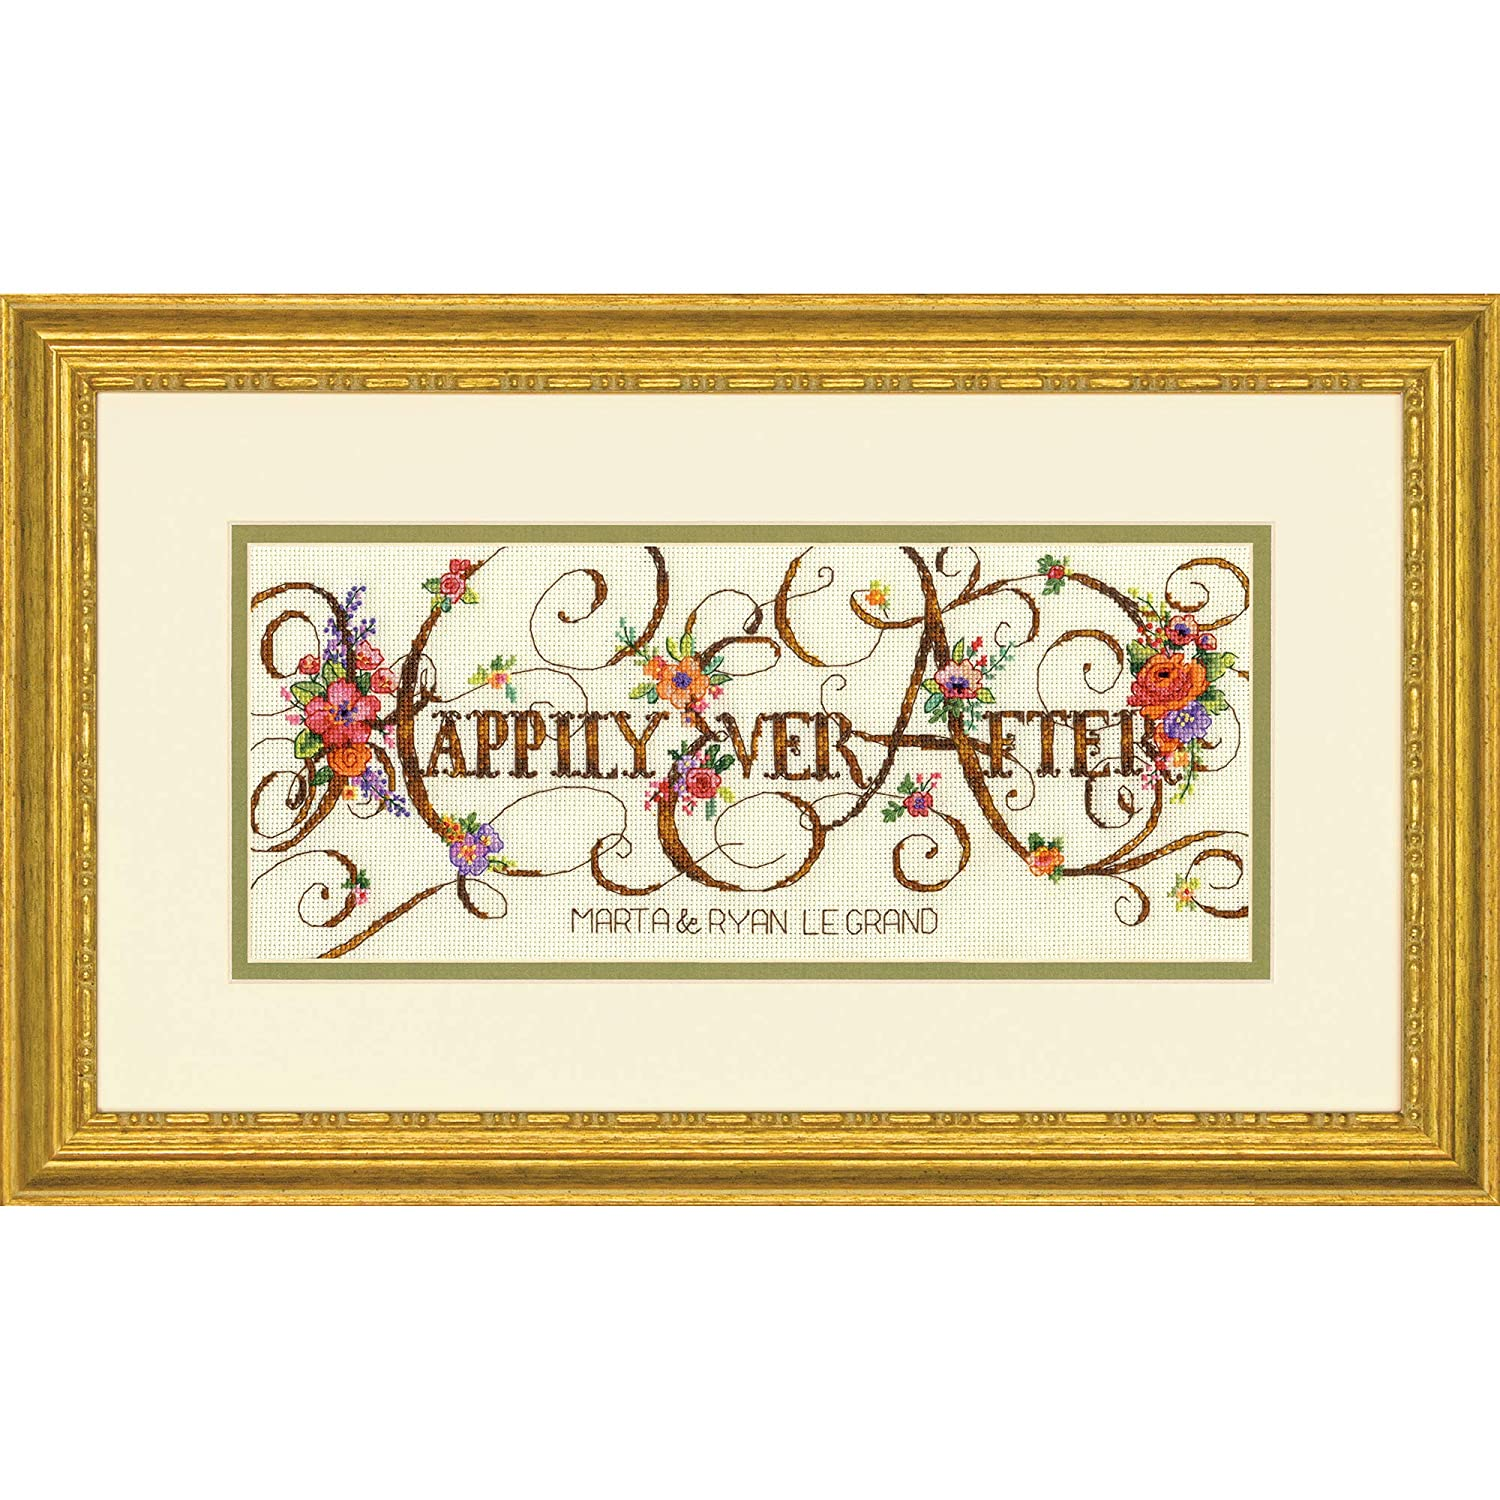 18 Count Ivory Aida Cloth 12 x 5 Dimensions Ever After Counted Cross Stitch Kit Personalized Wedding Gift